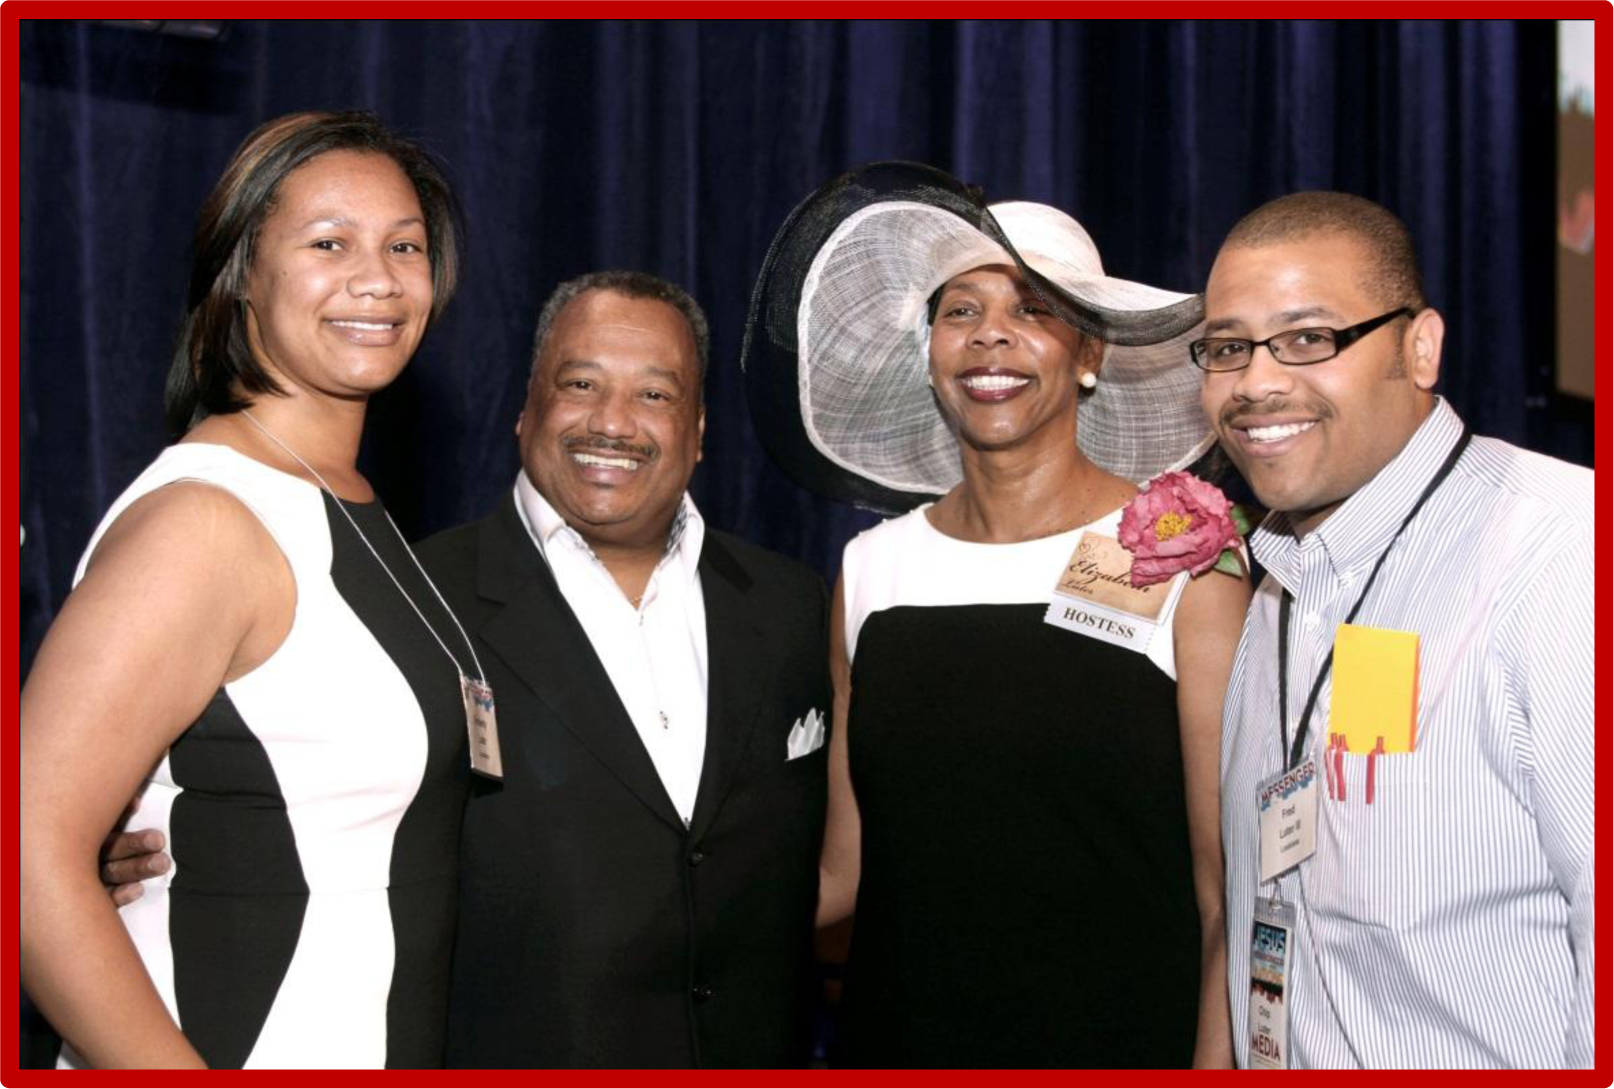 The Luter Family - June 19, 2012